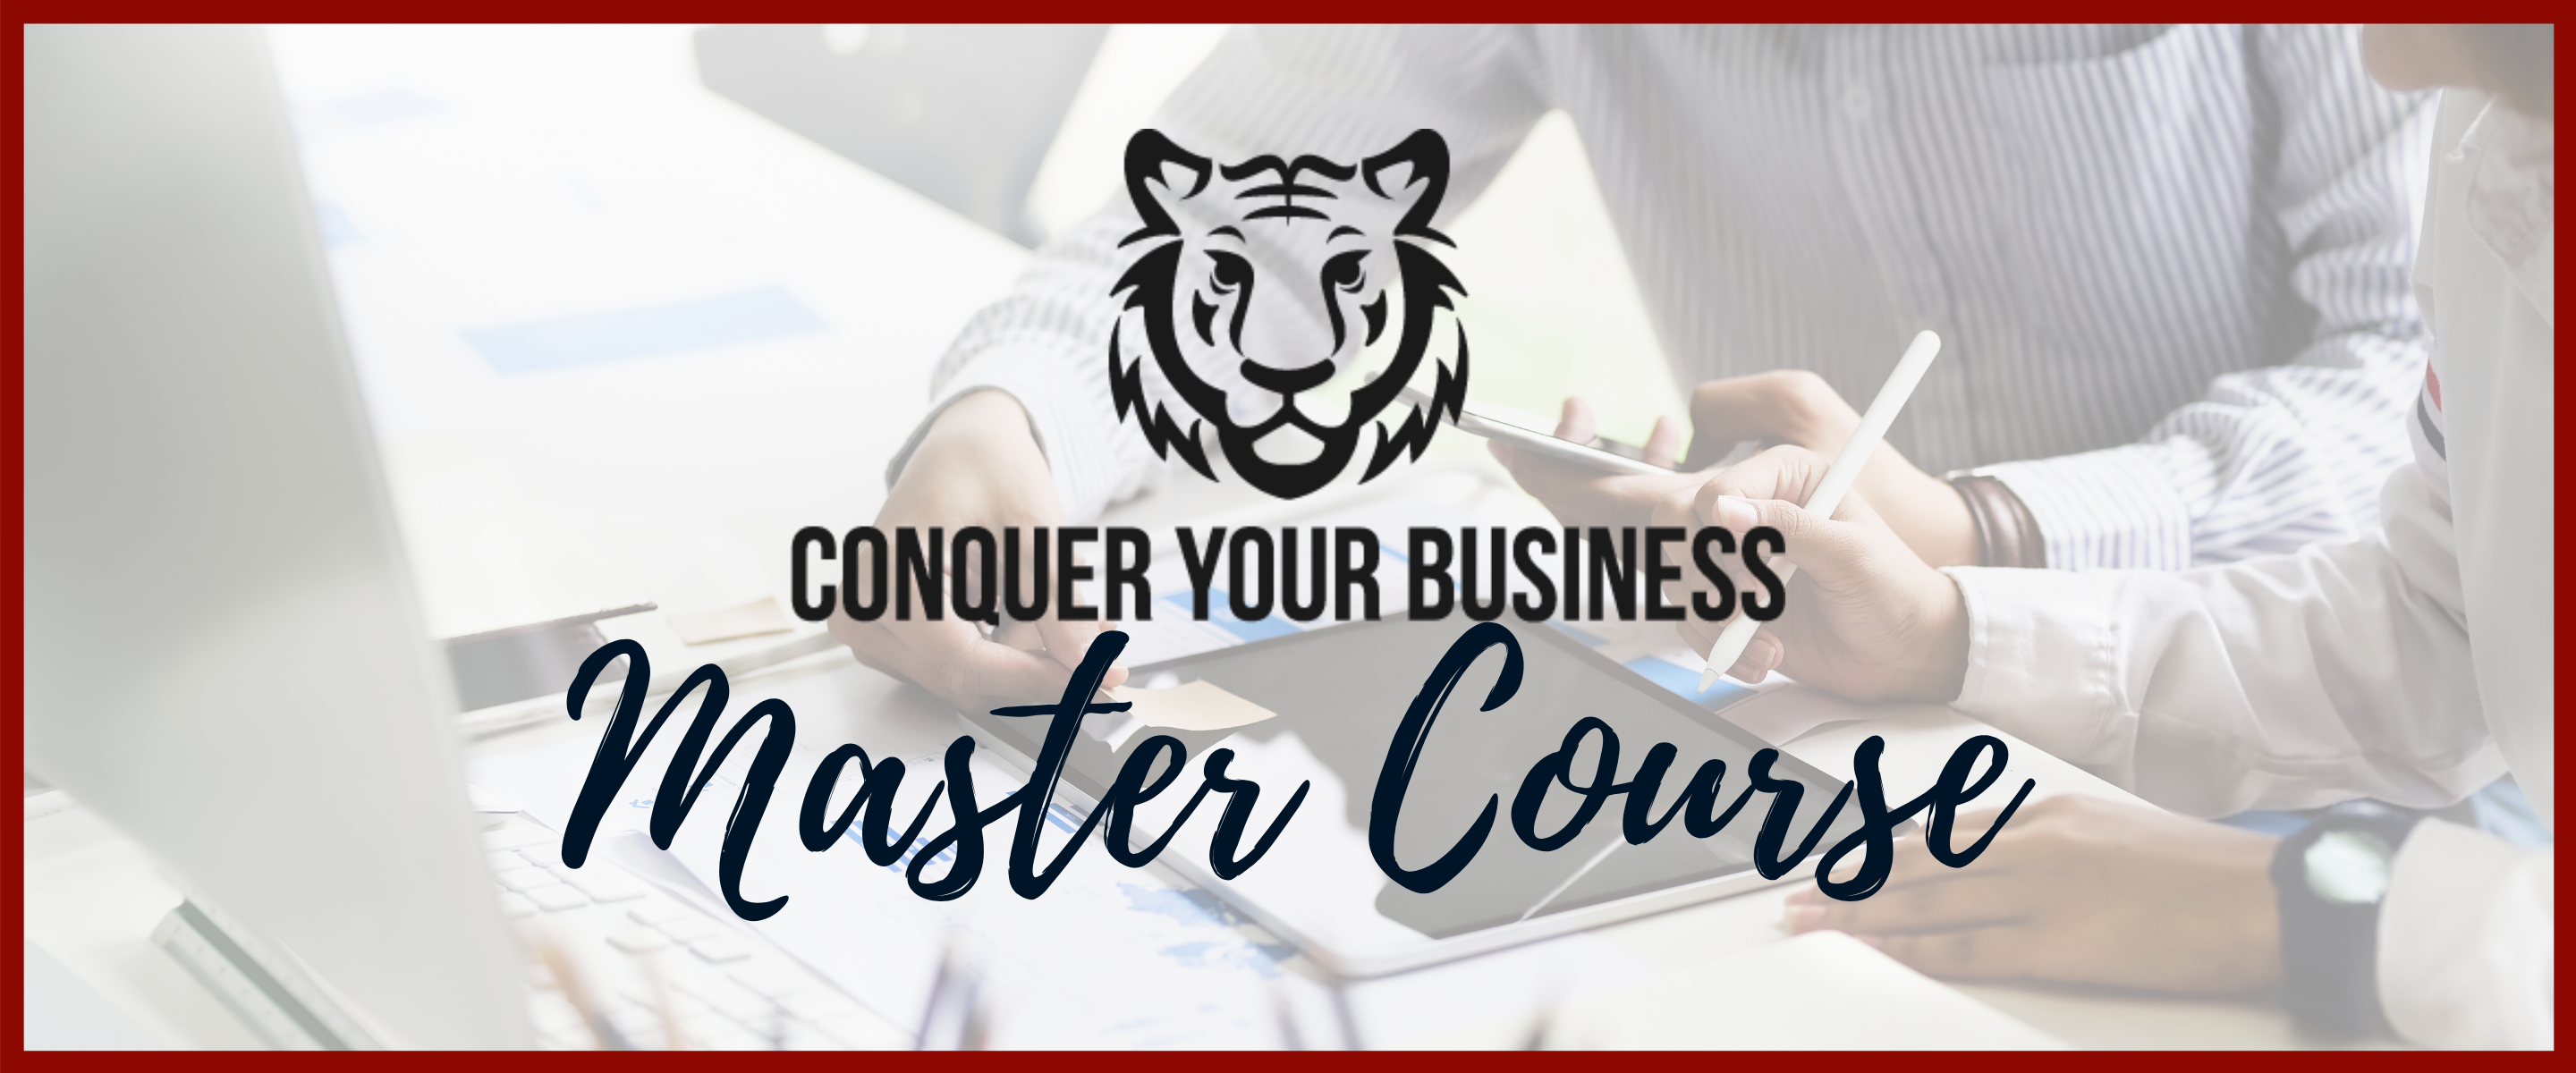 Master Course Banner